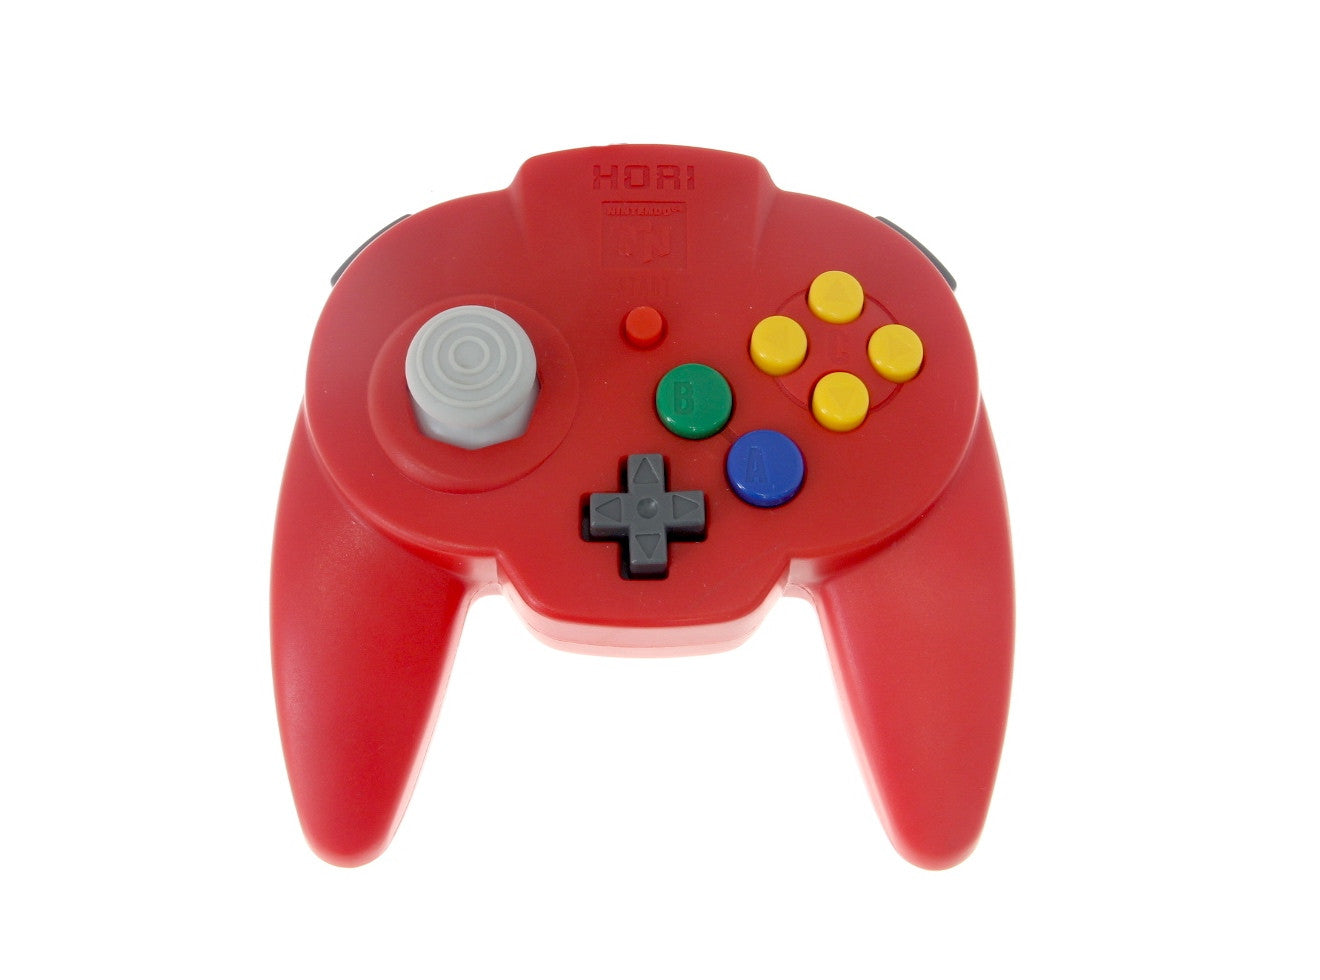 Image 1 for HORI Pad Mini 64 Red  (no box/manual)